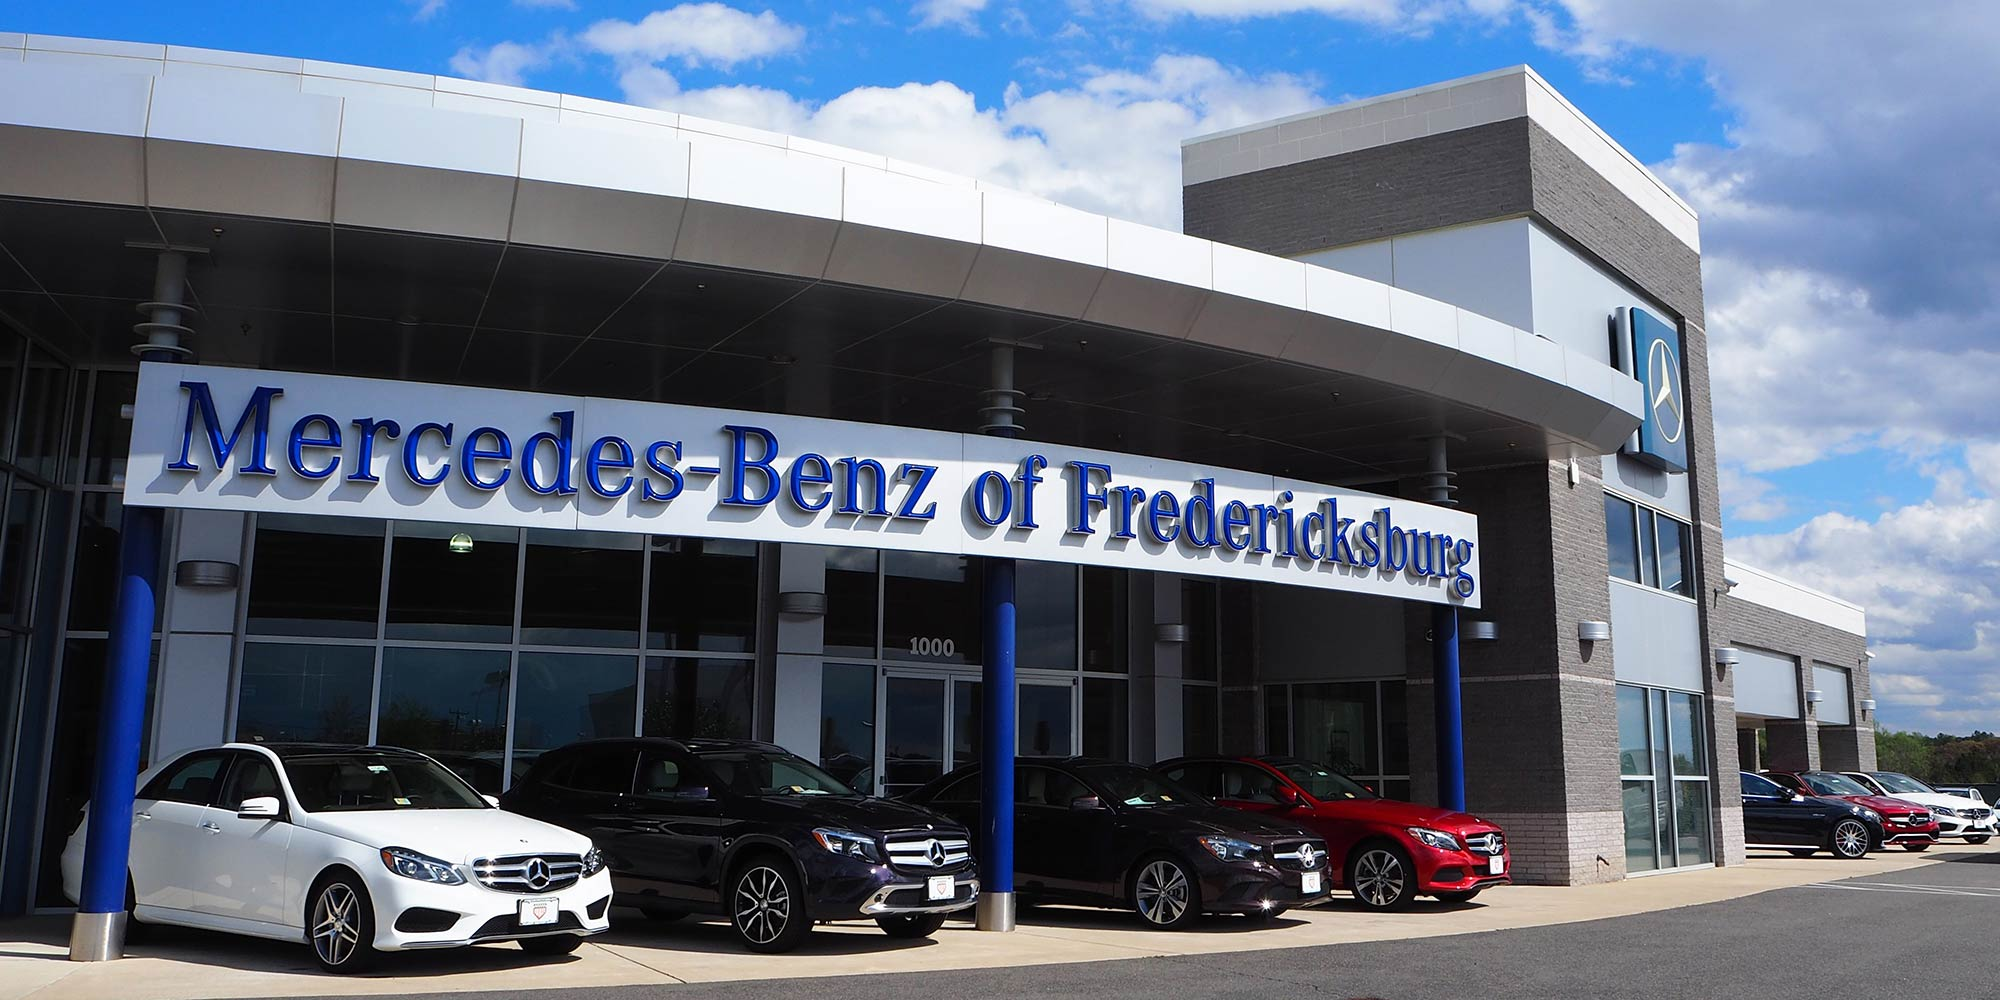 mercedes benz dealer service and used car sales center in